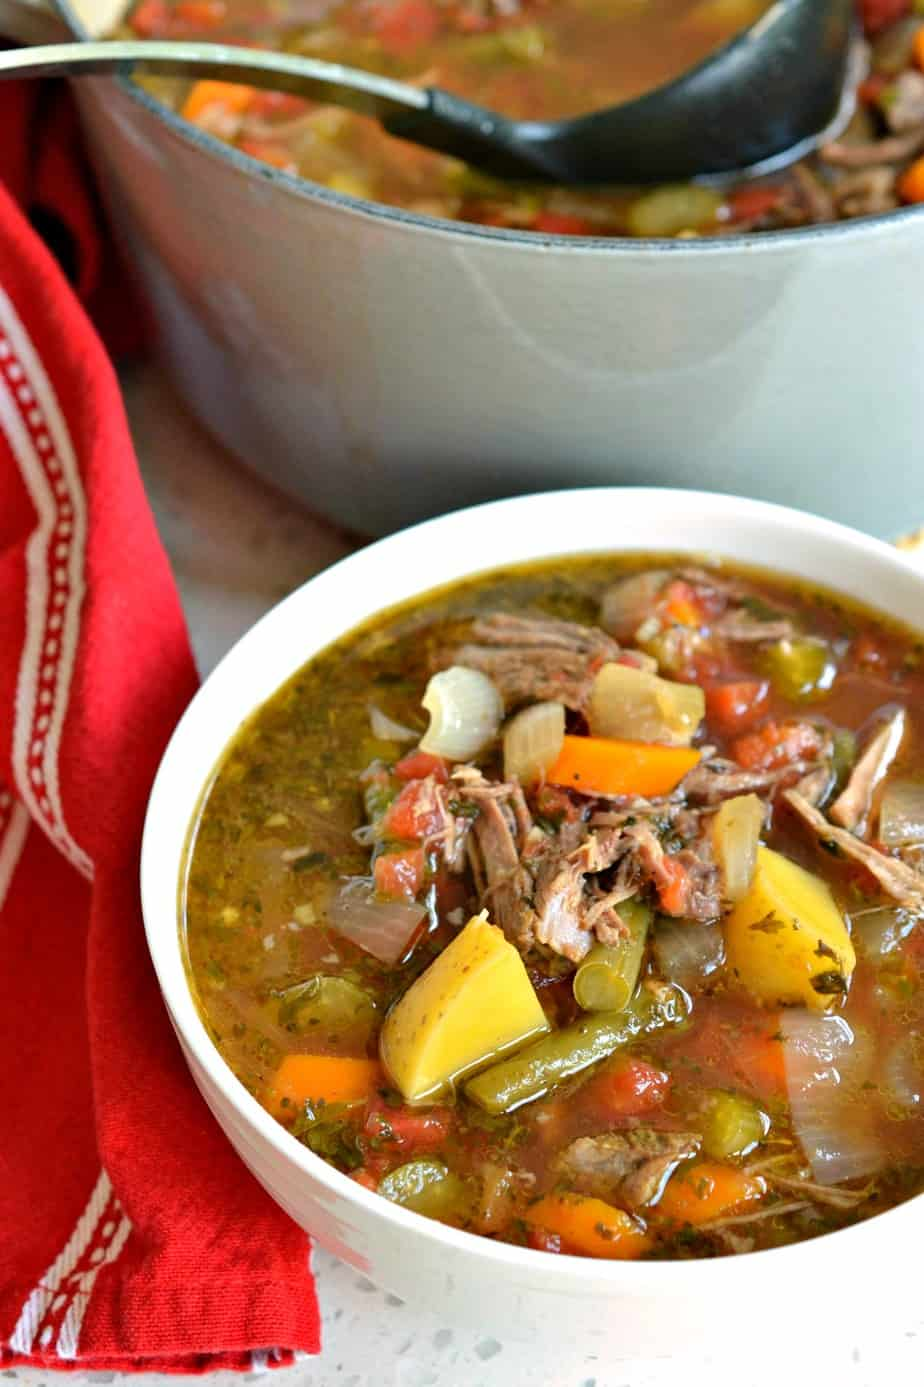 I like to make this Vegetable Beef Soup with a slow simmered chuck roast.